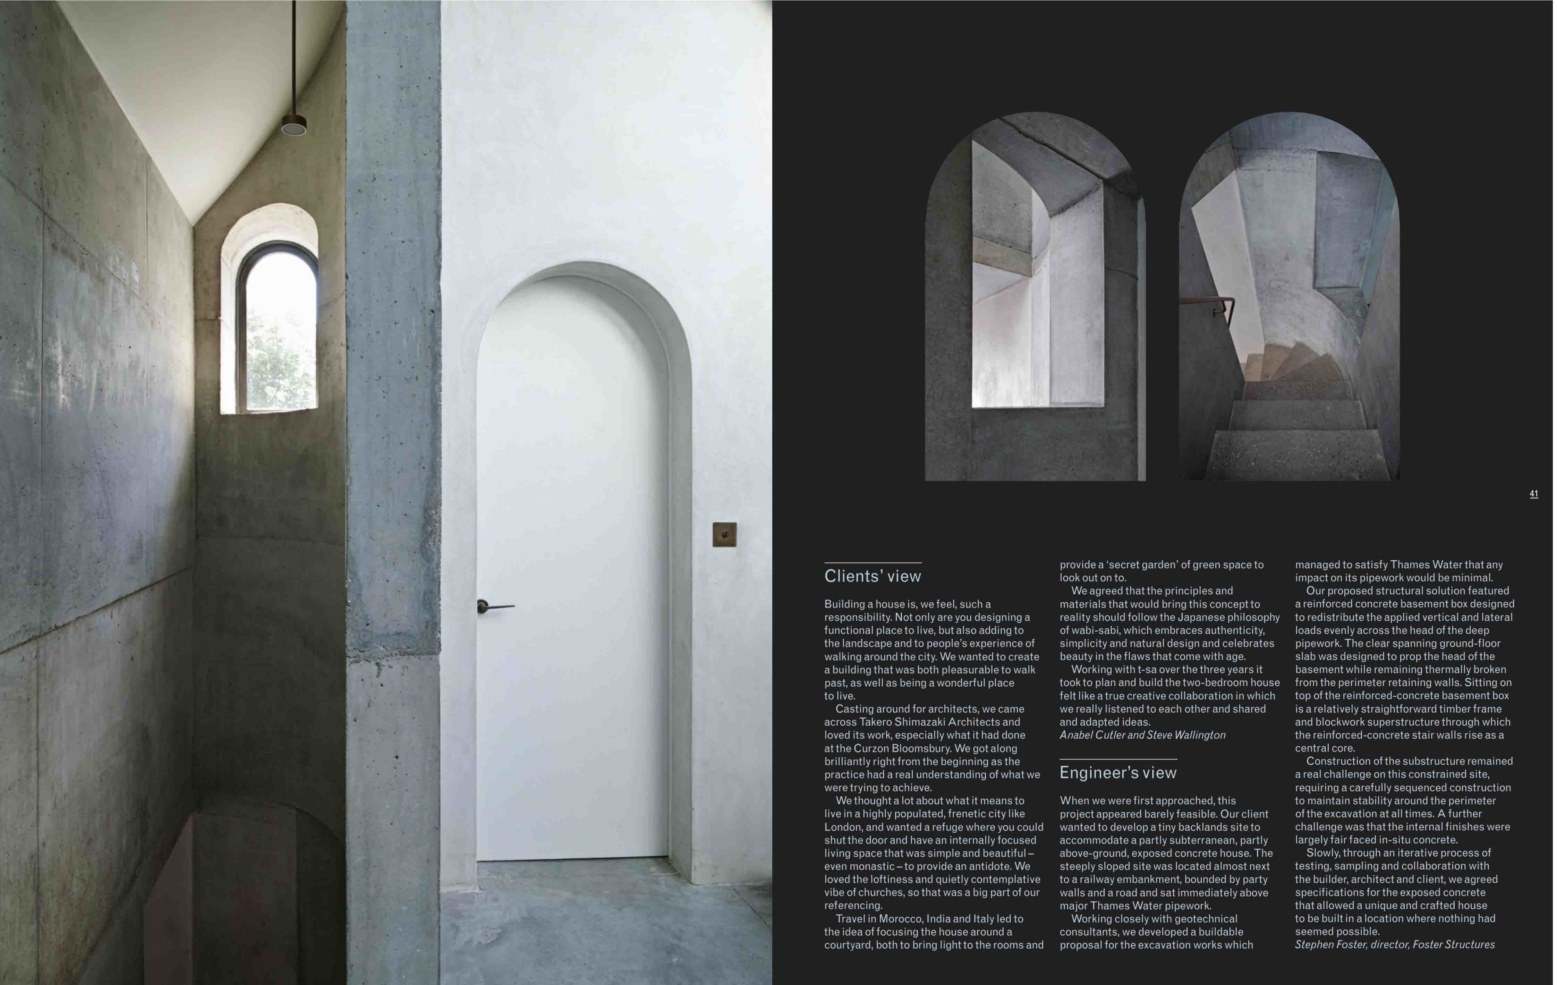 t-sa_Tiverton_Architects Journal_04